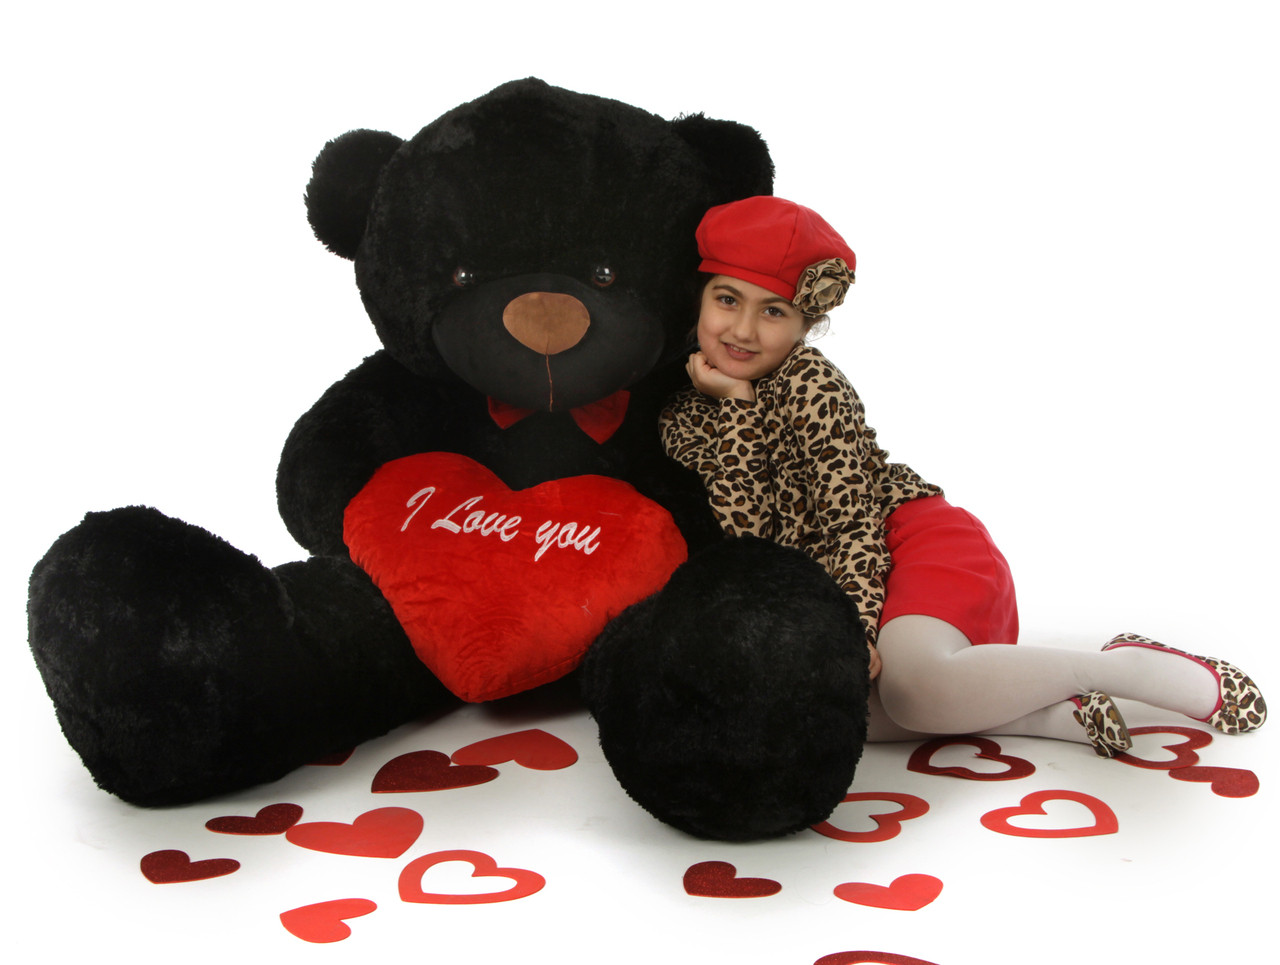 5ft juju cuddles black valentines day teddy bear with red i love you heart huge teddy bear - Giant Teddy Bear For Valentines Day